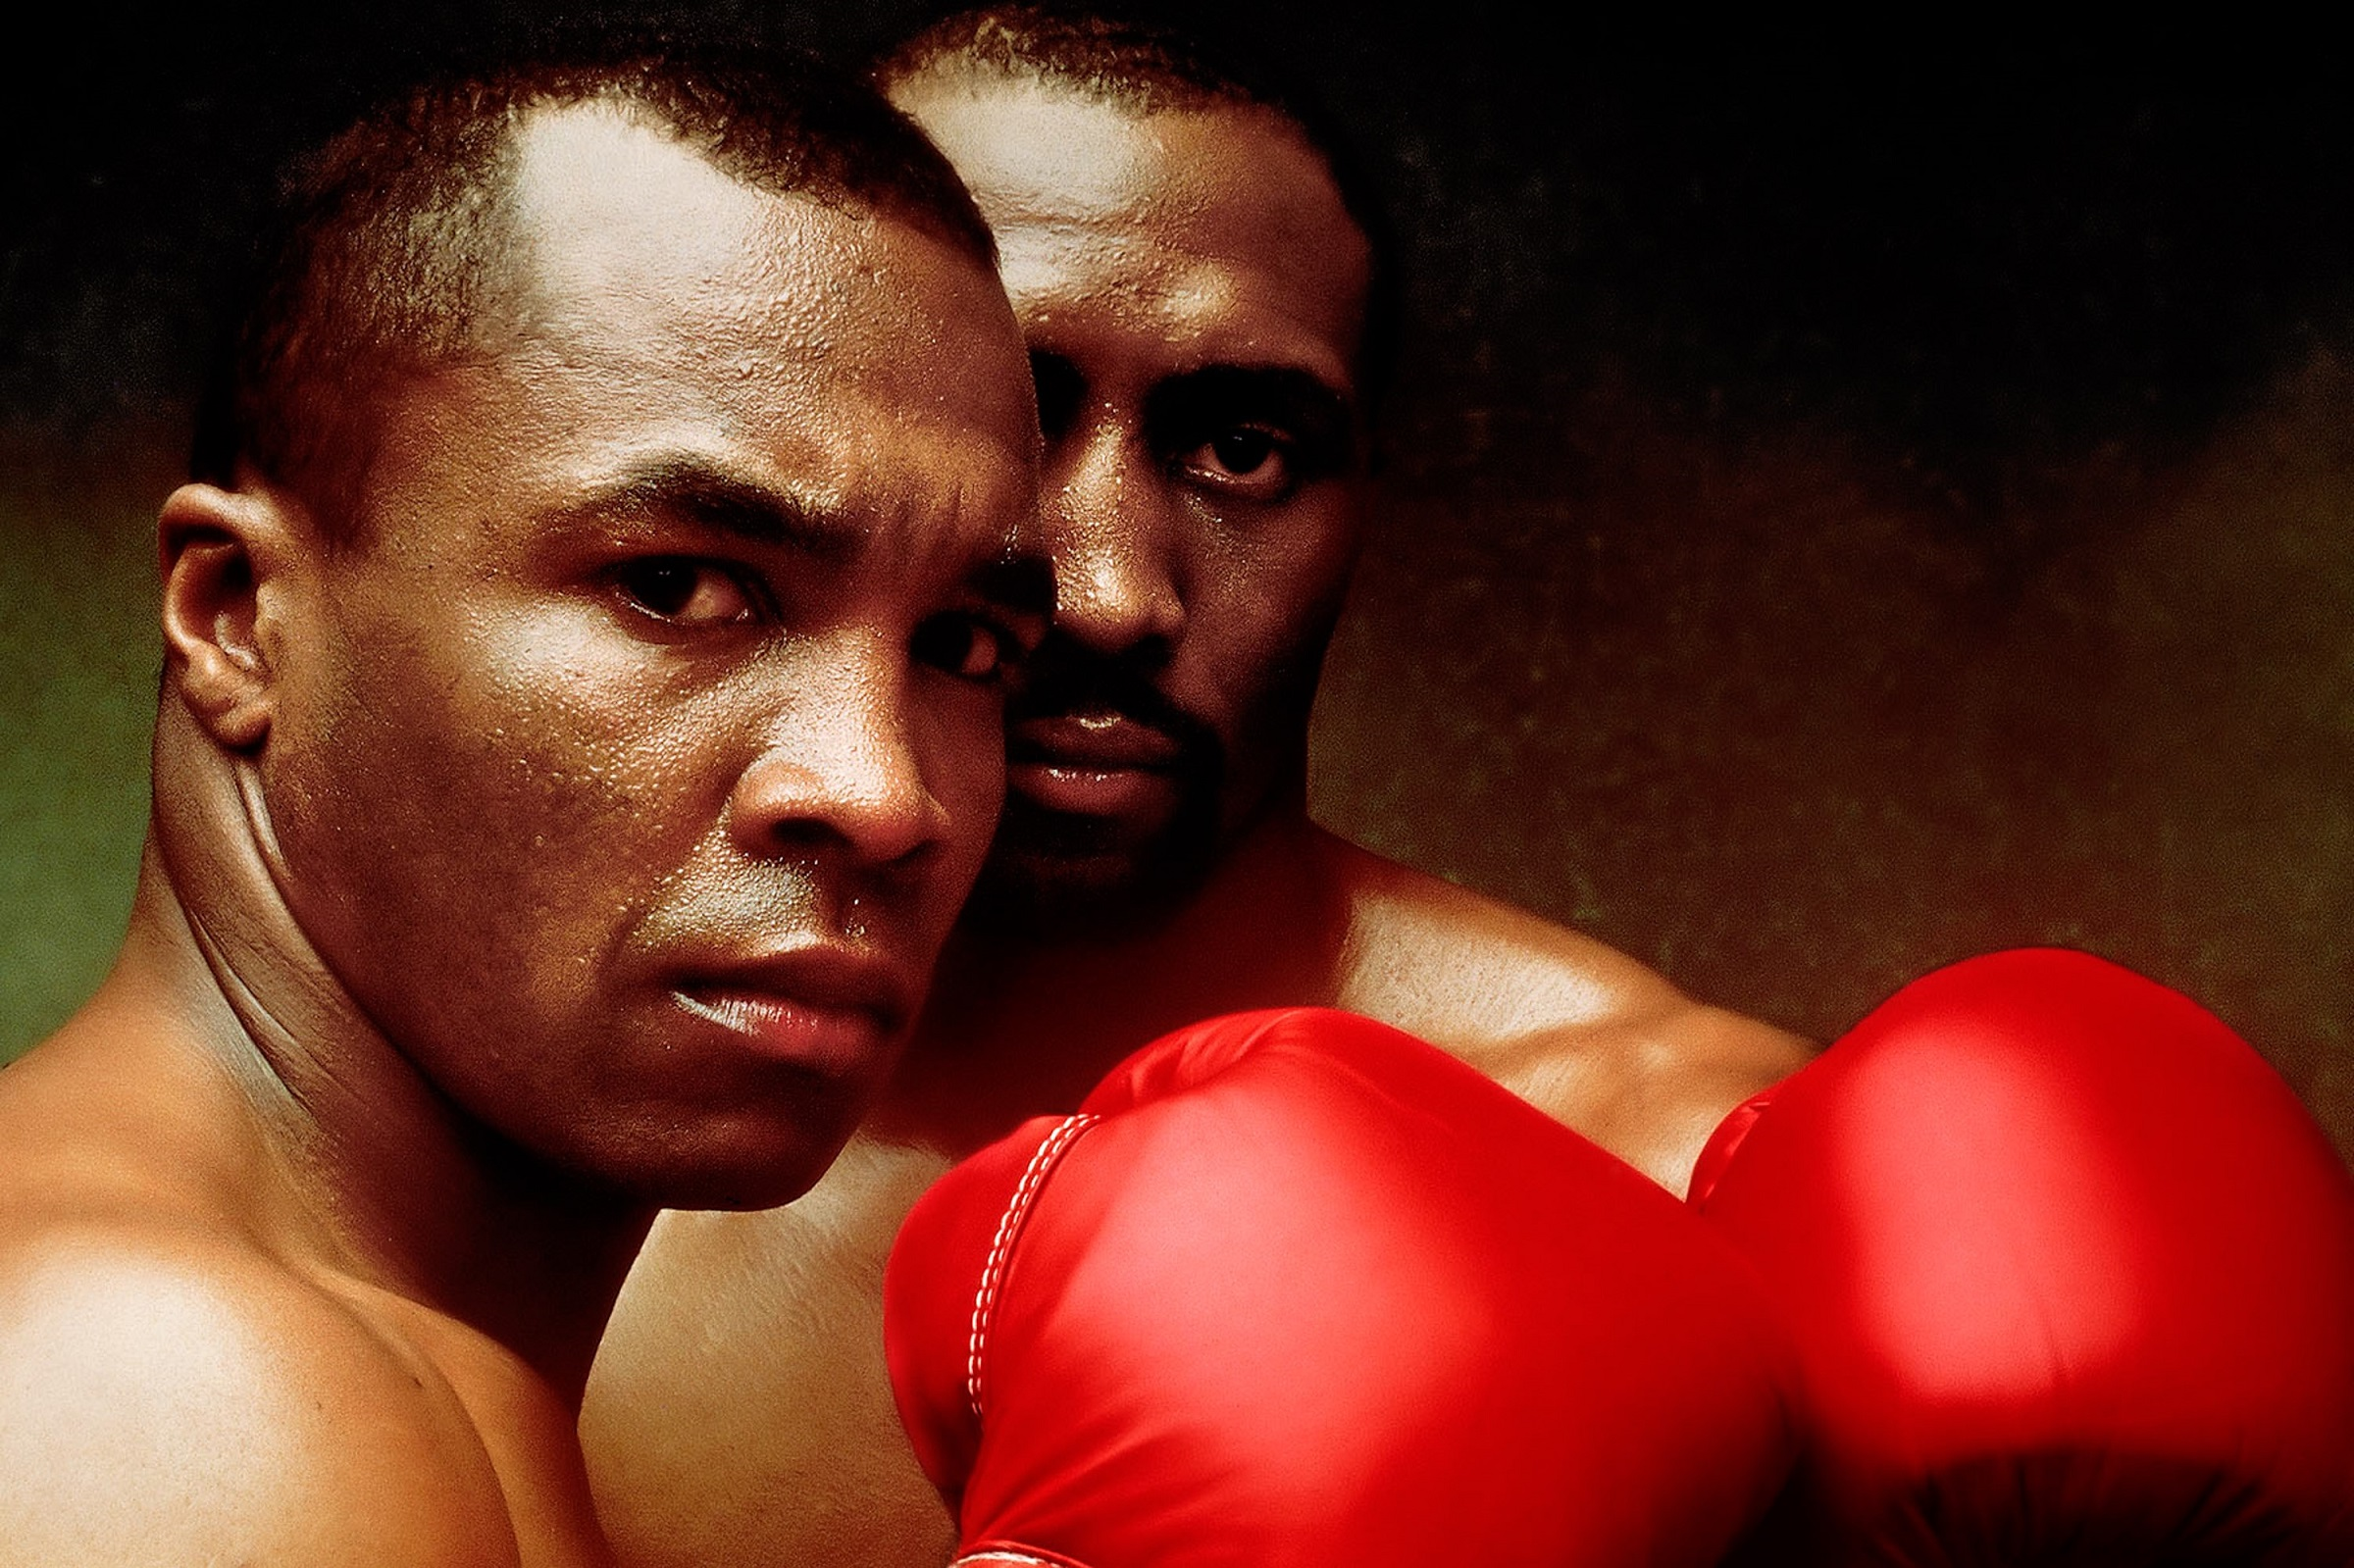 Sugar Ray Leonard and Tommy Hearns, NYC, 1989 by Walter Iooss